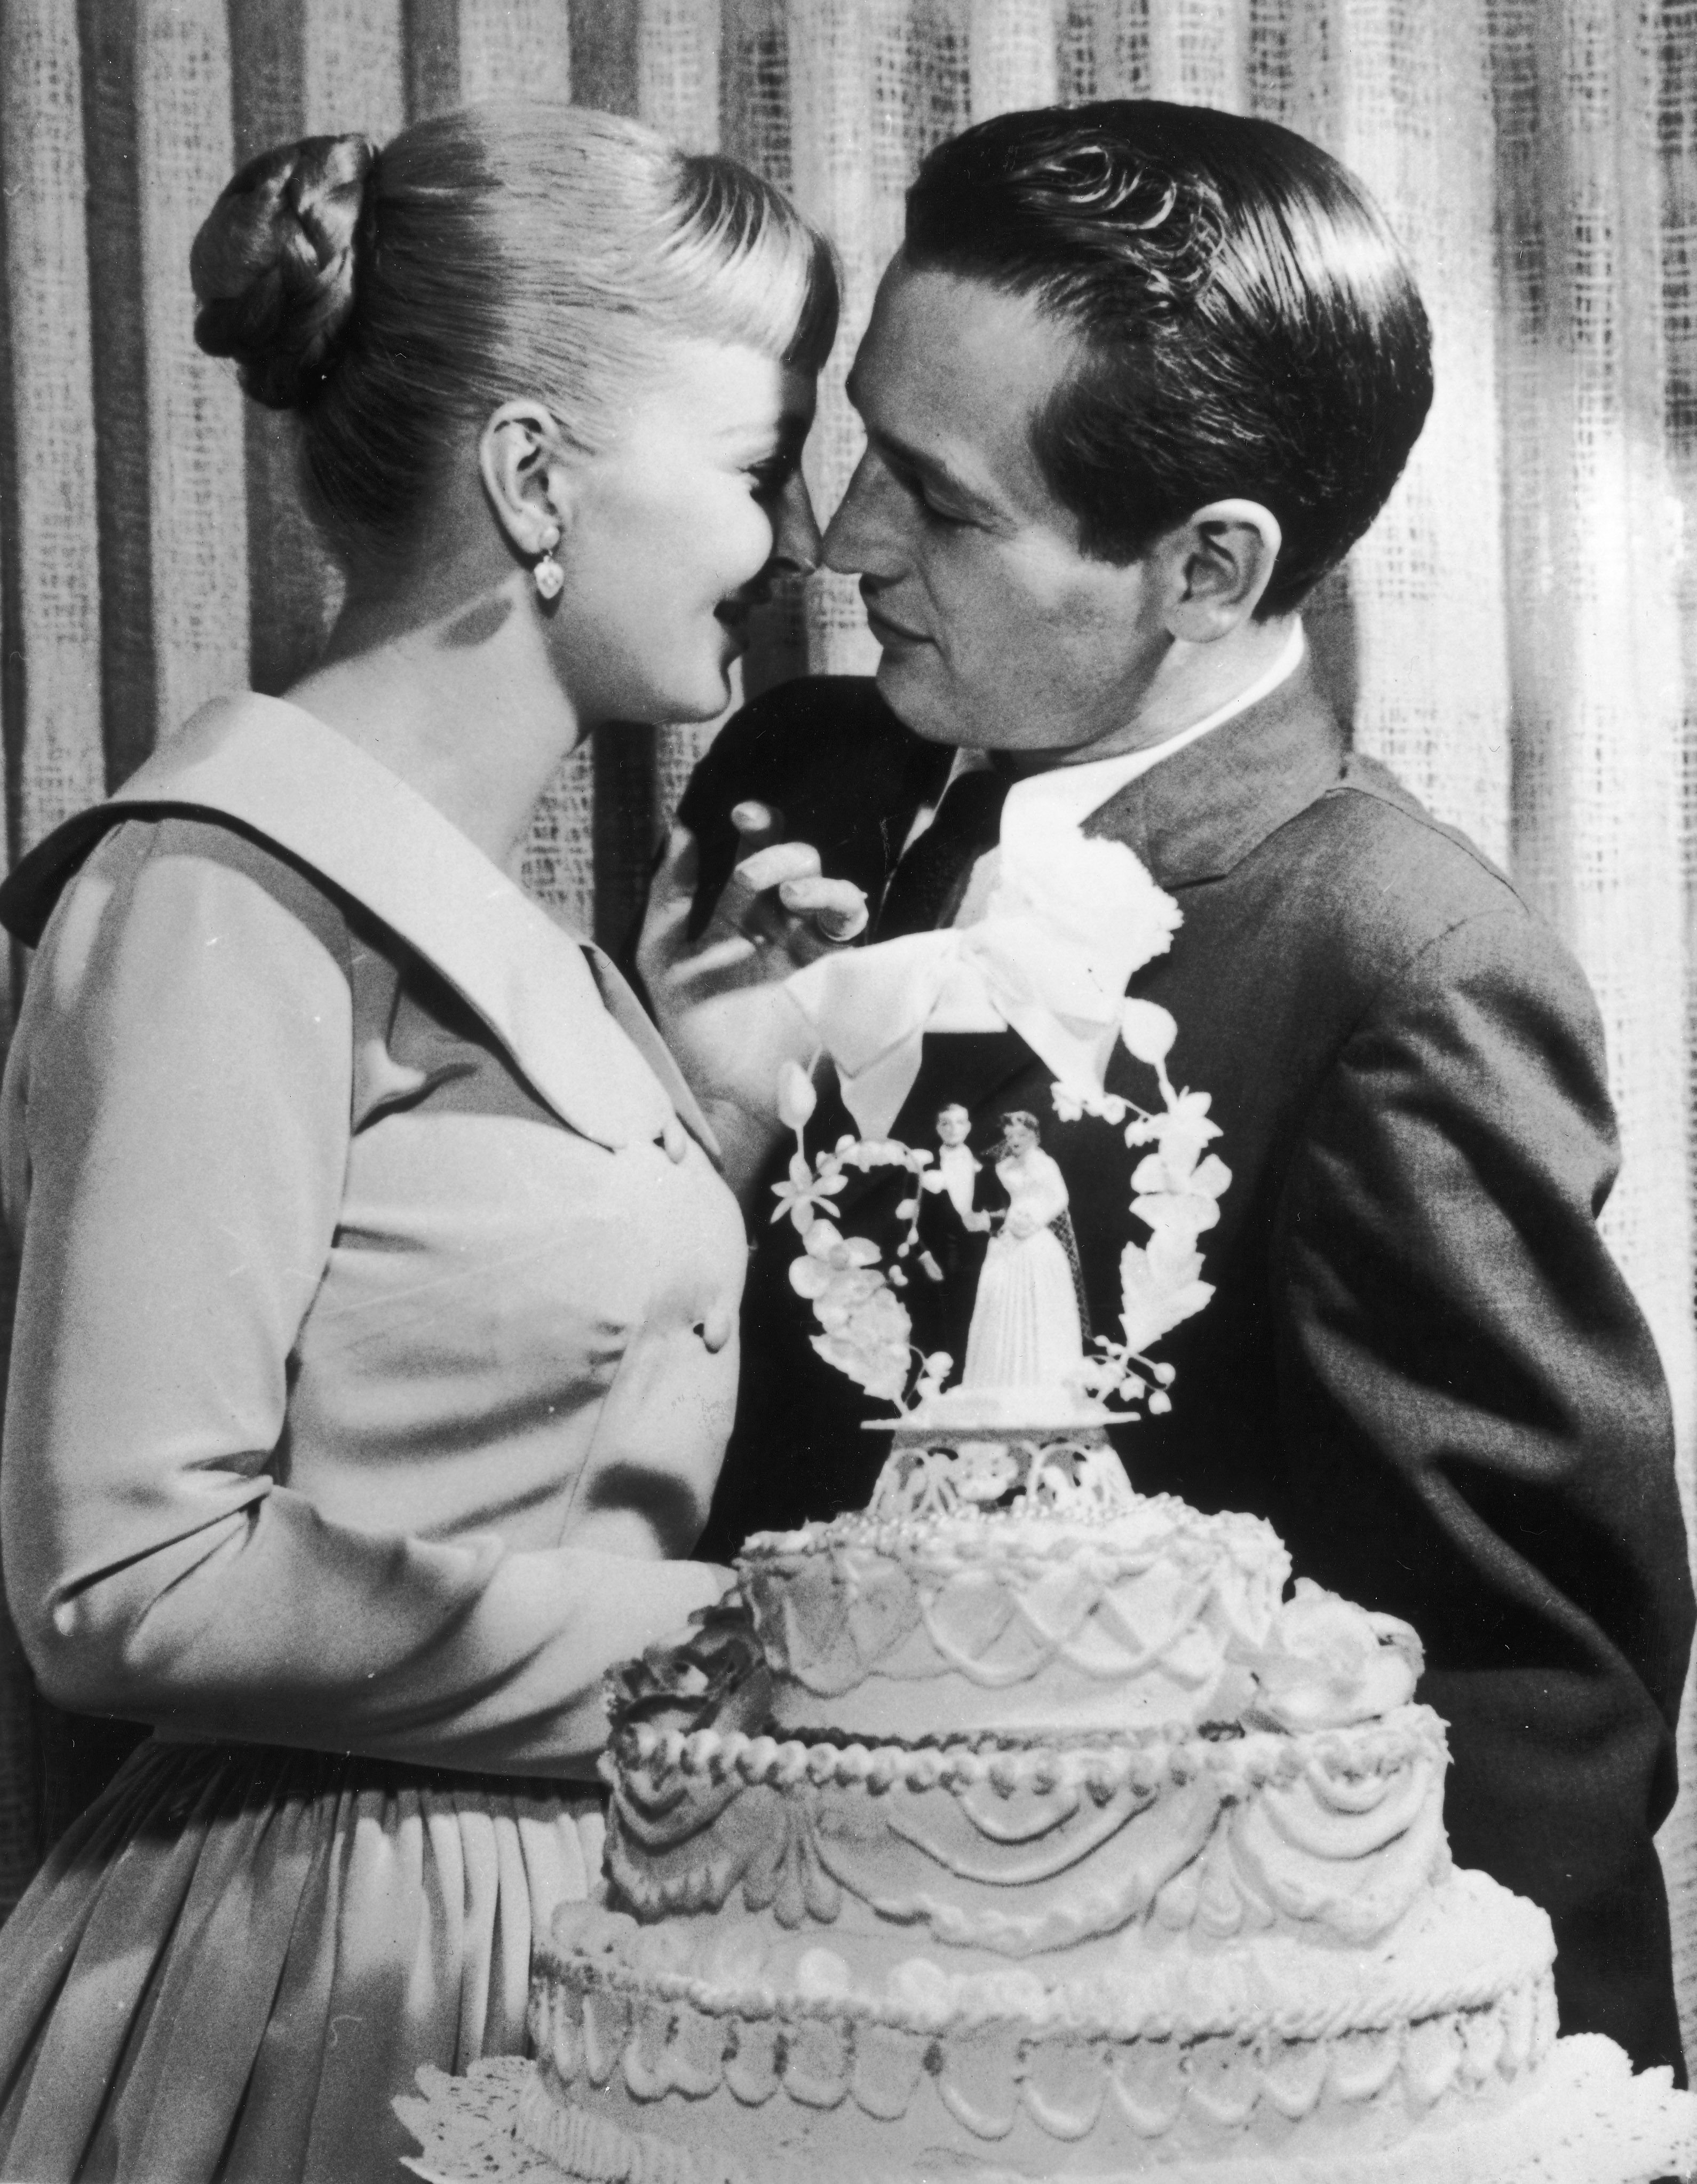 Paul Newman and Joanne Woodward on their wedding day, 1958 | Photo: Getty Images